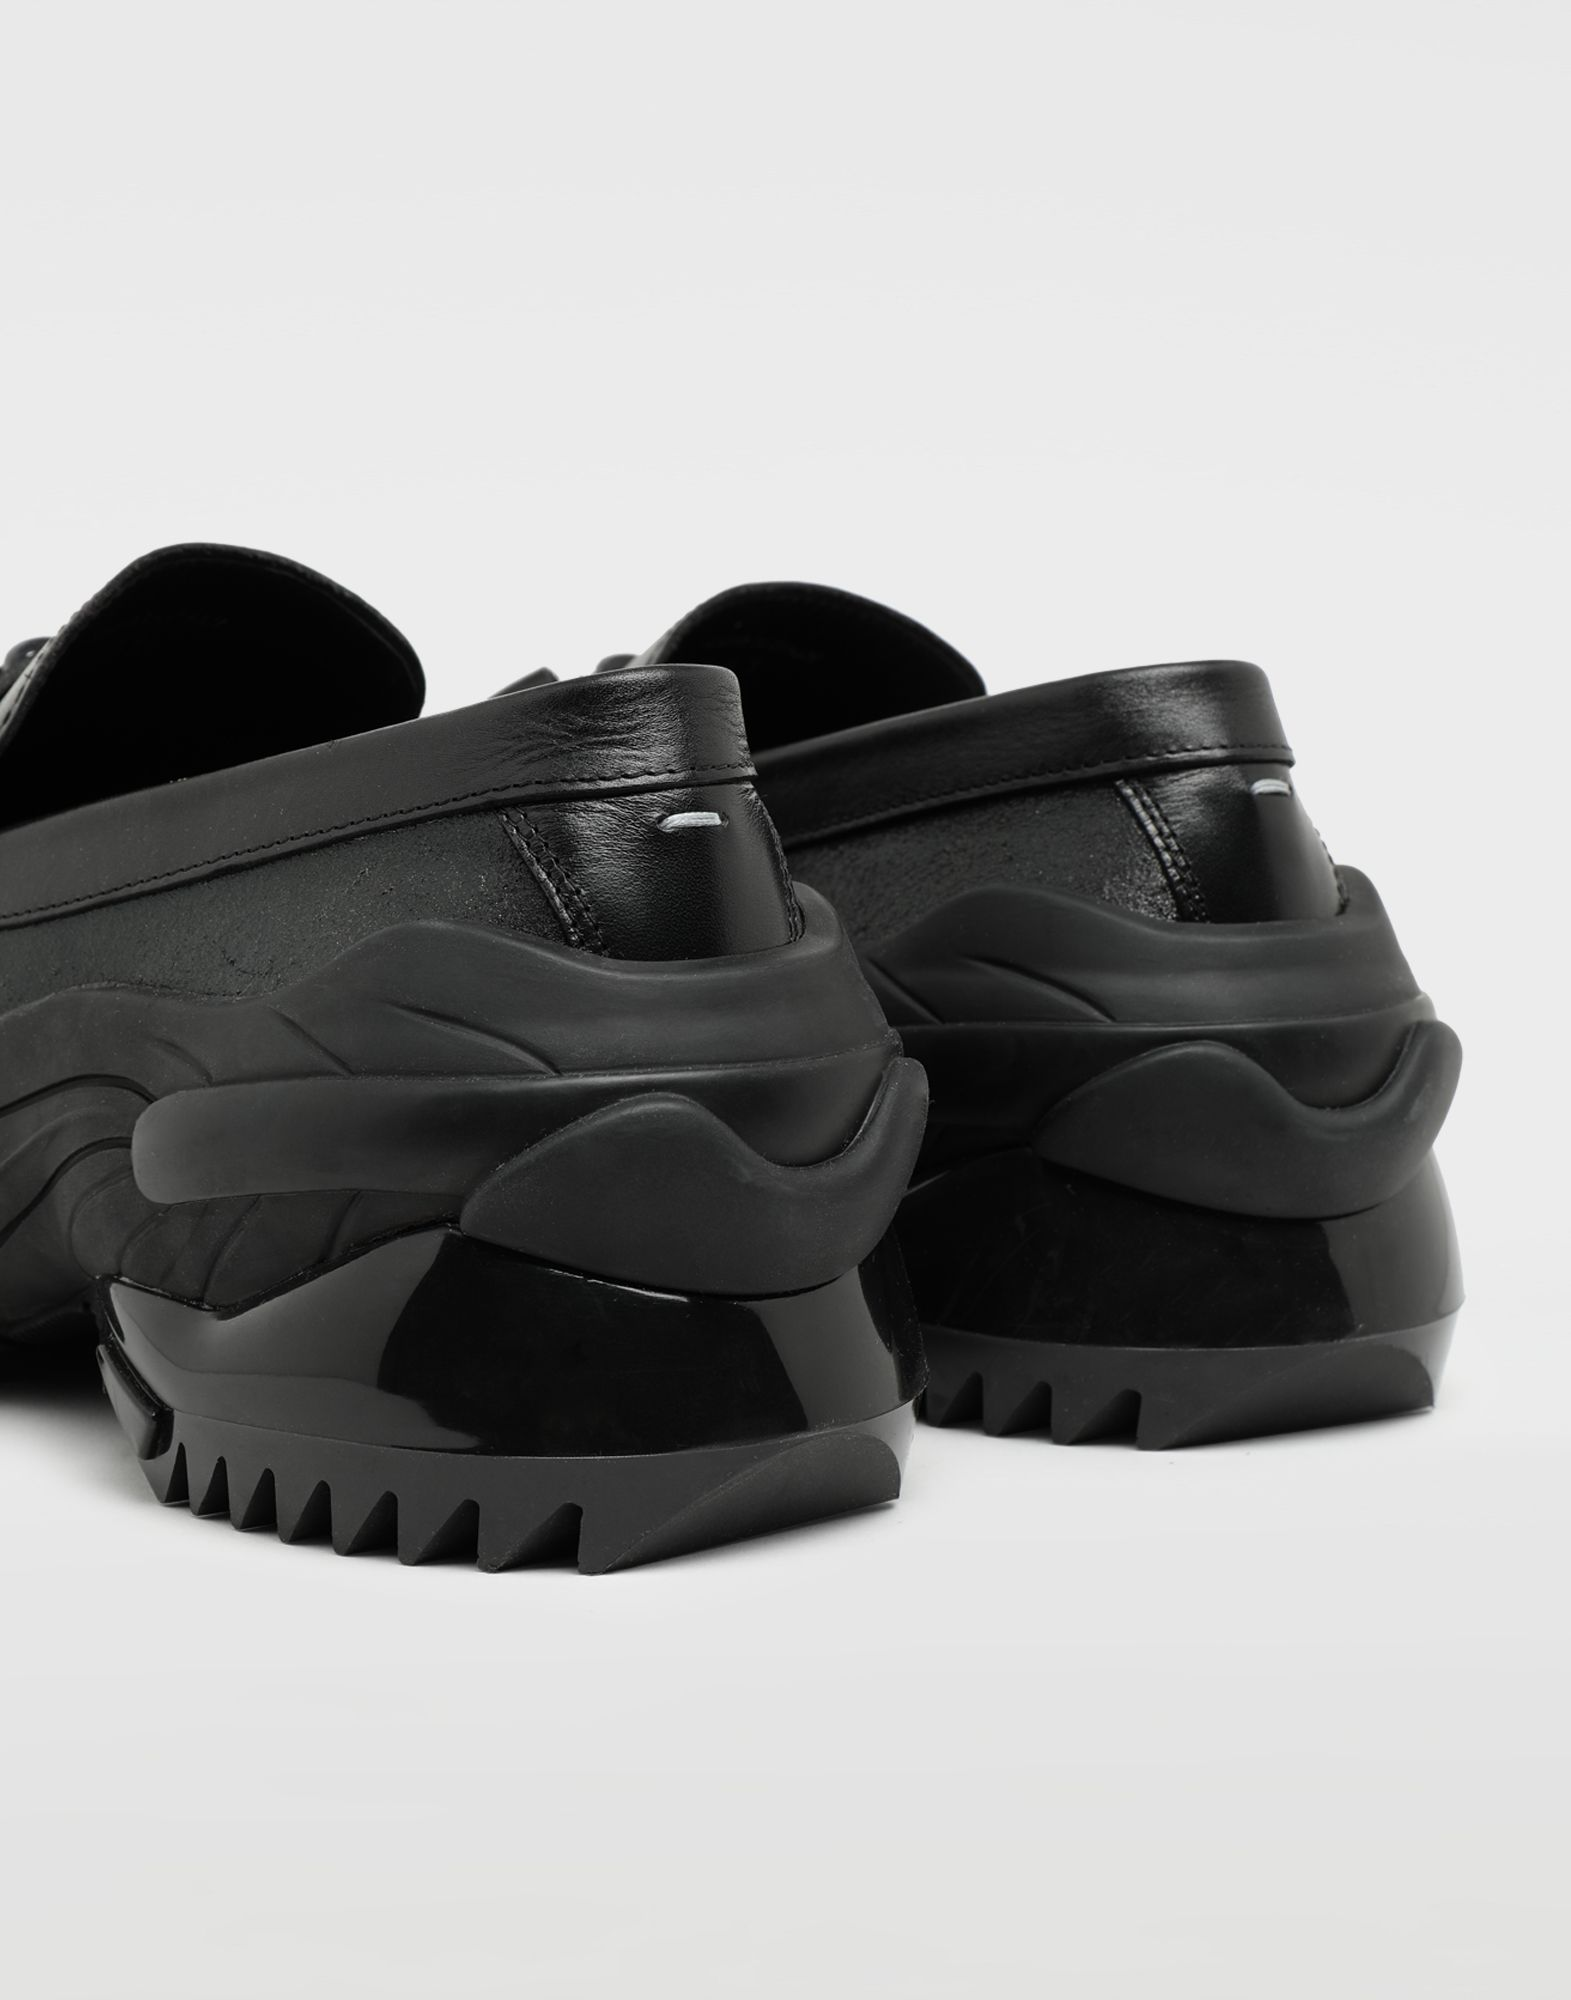 MAISON MARGIELA Sneakers-mocassins à gland Spliced Mocassins Homme e